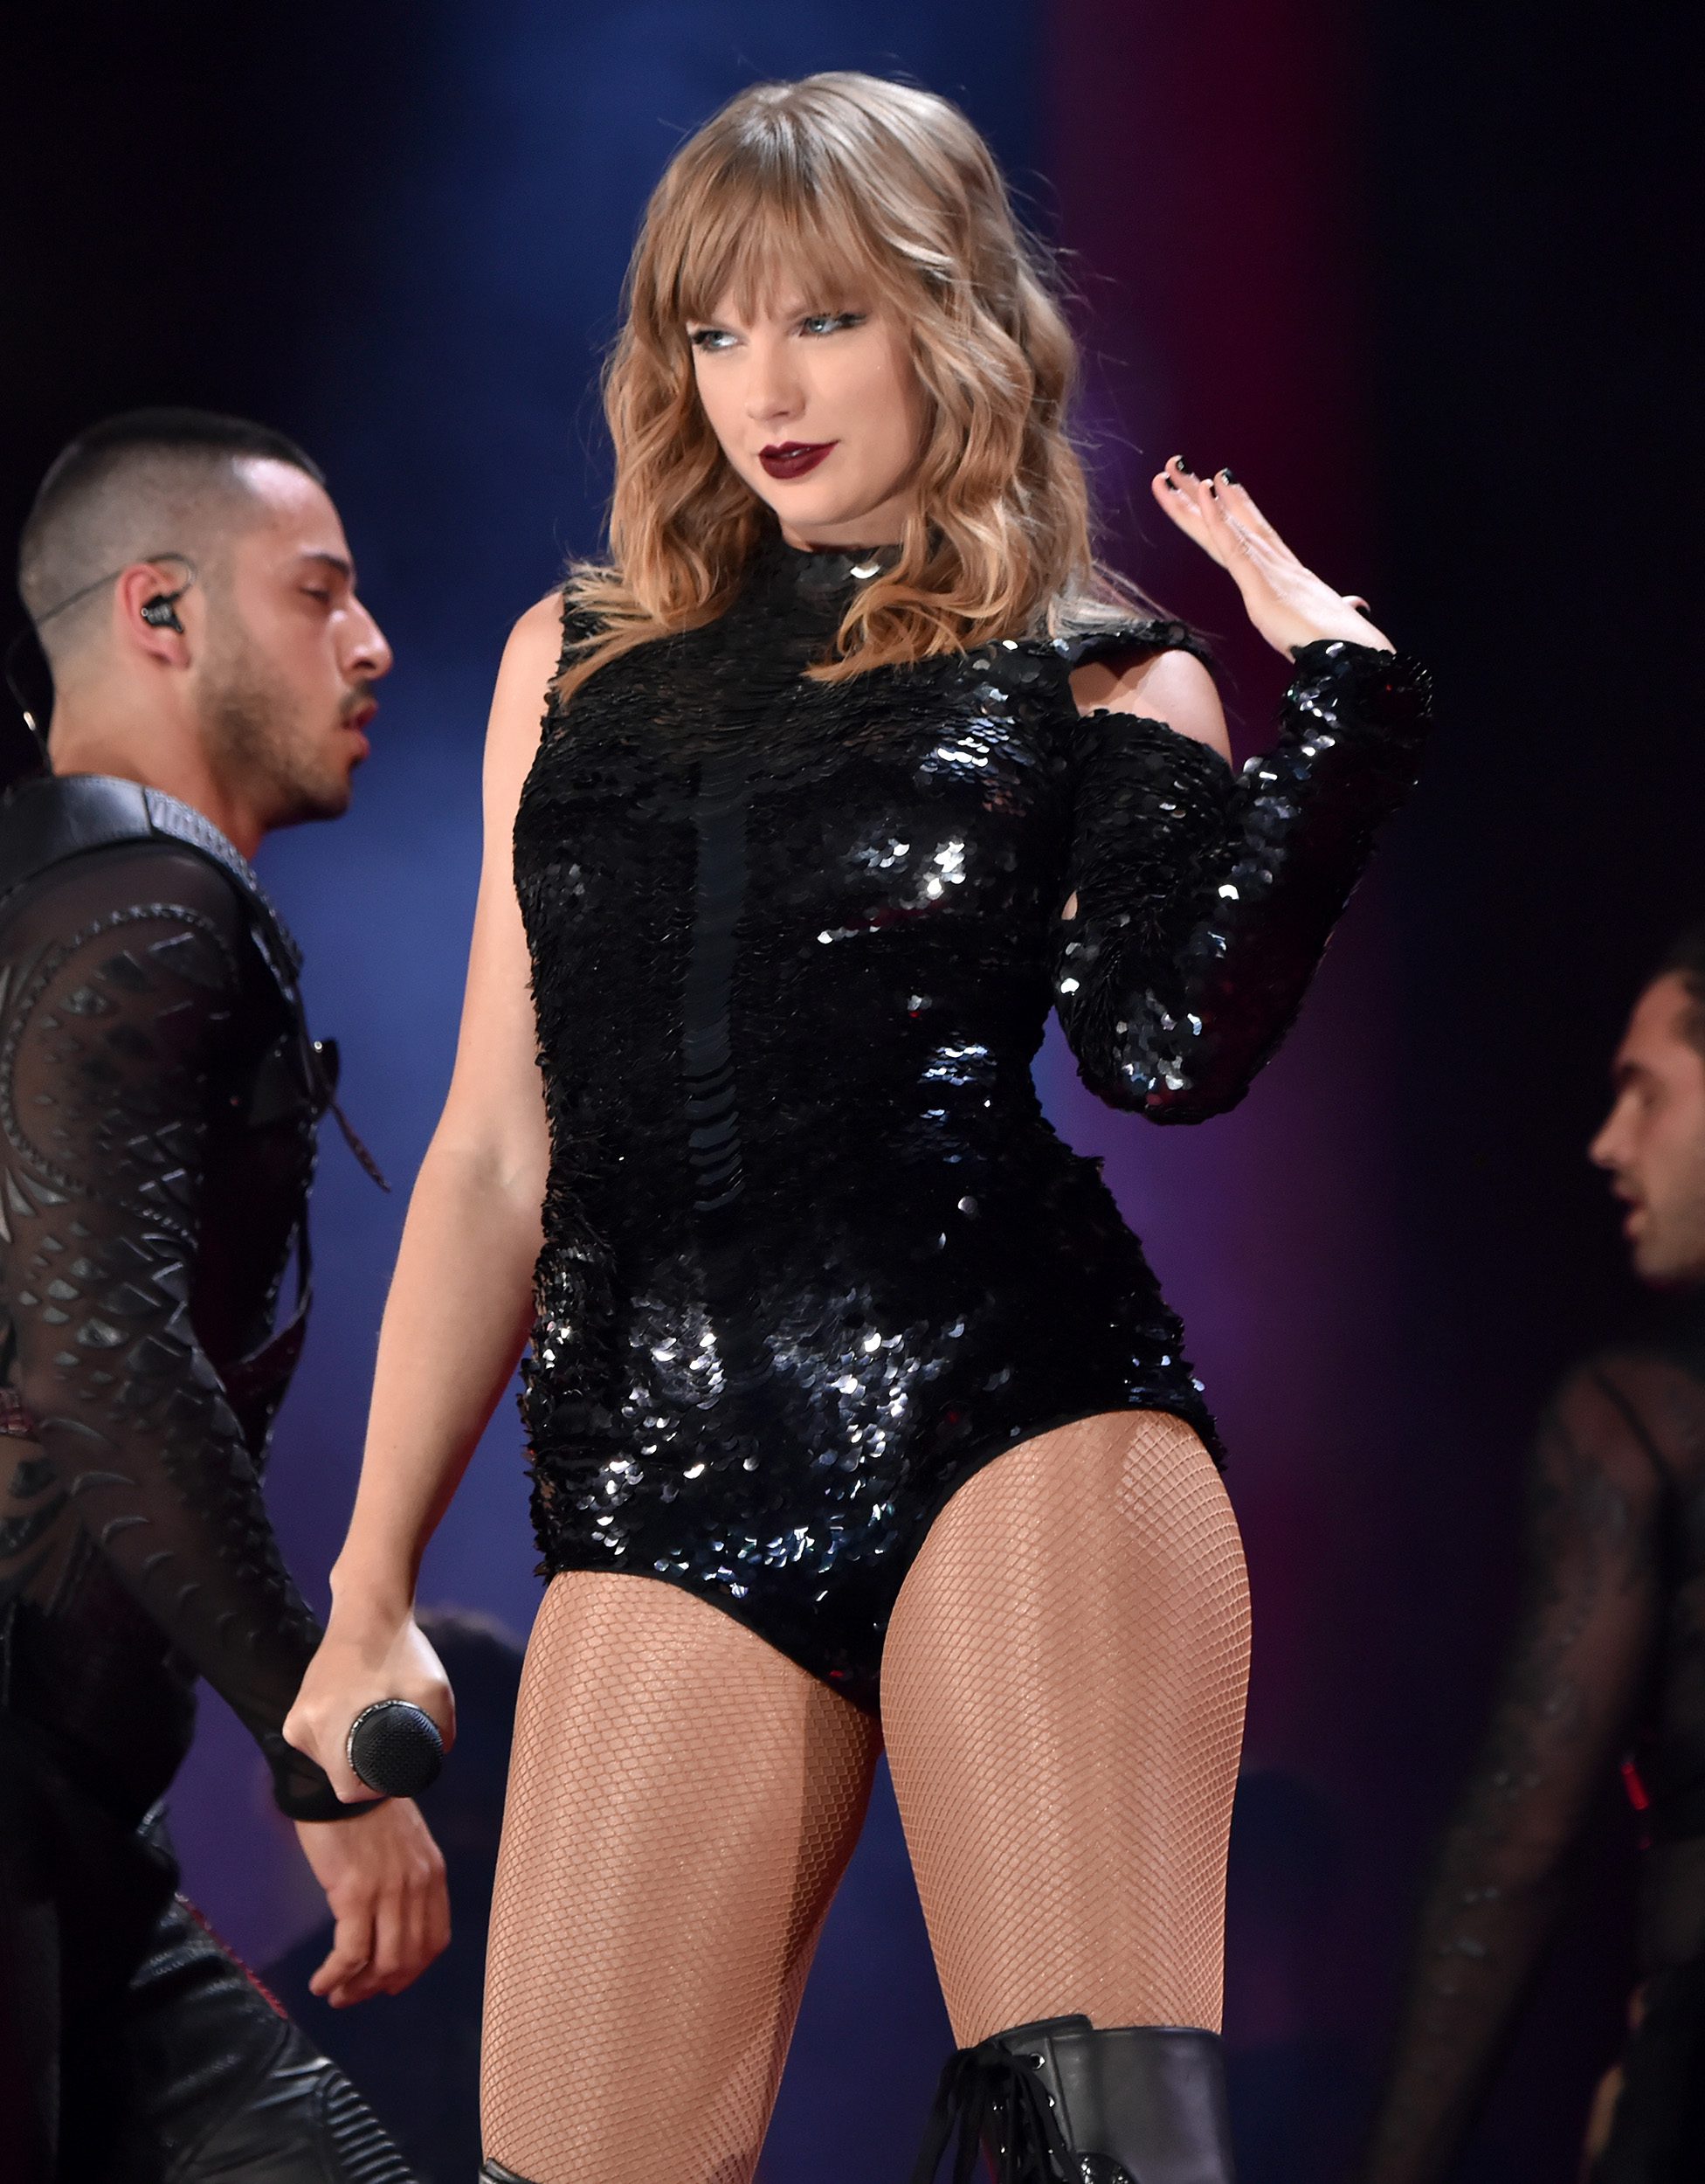 taylor-swift-all-too-well